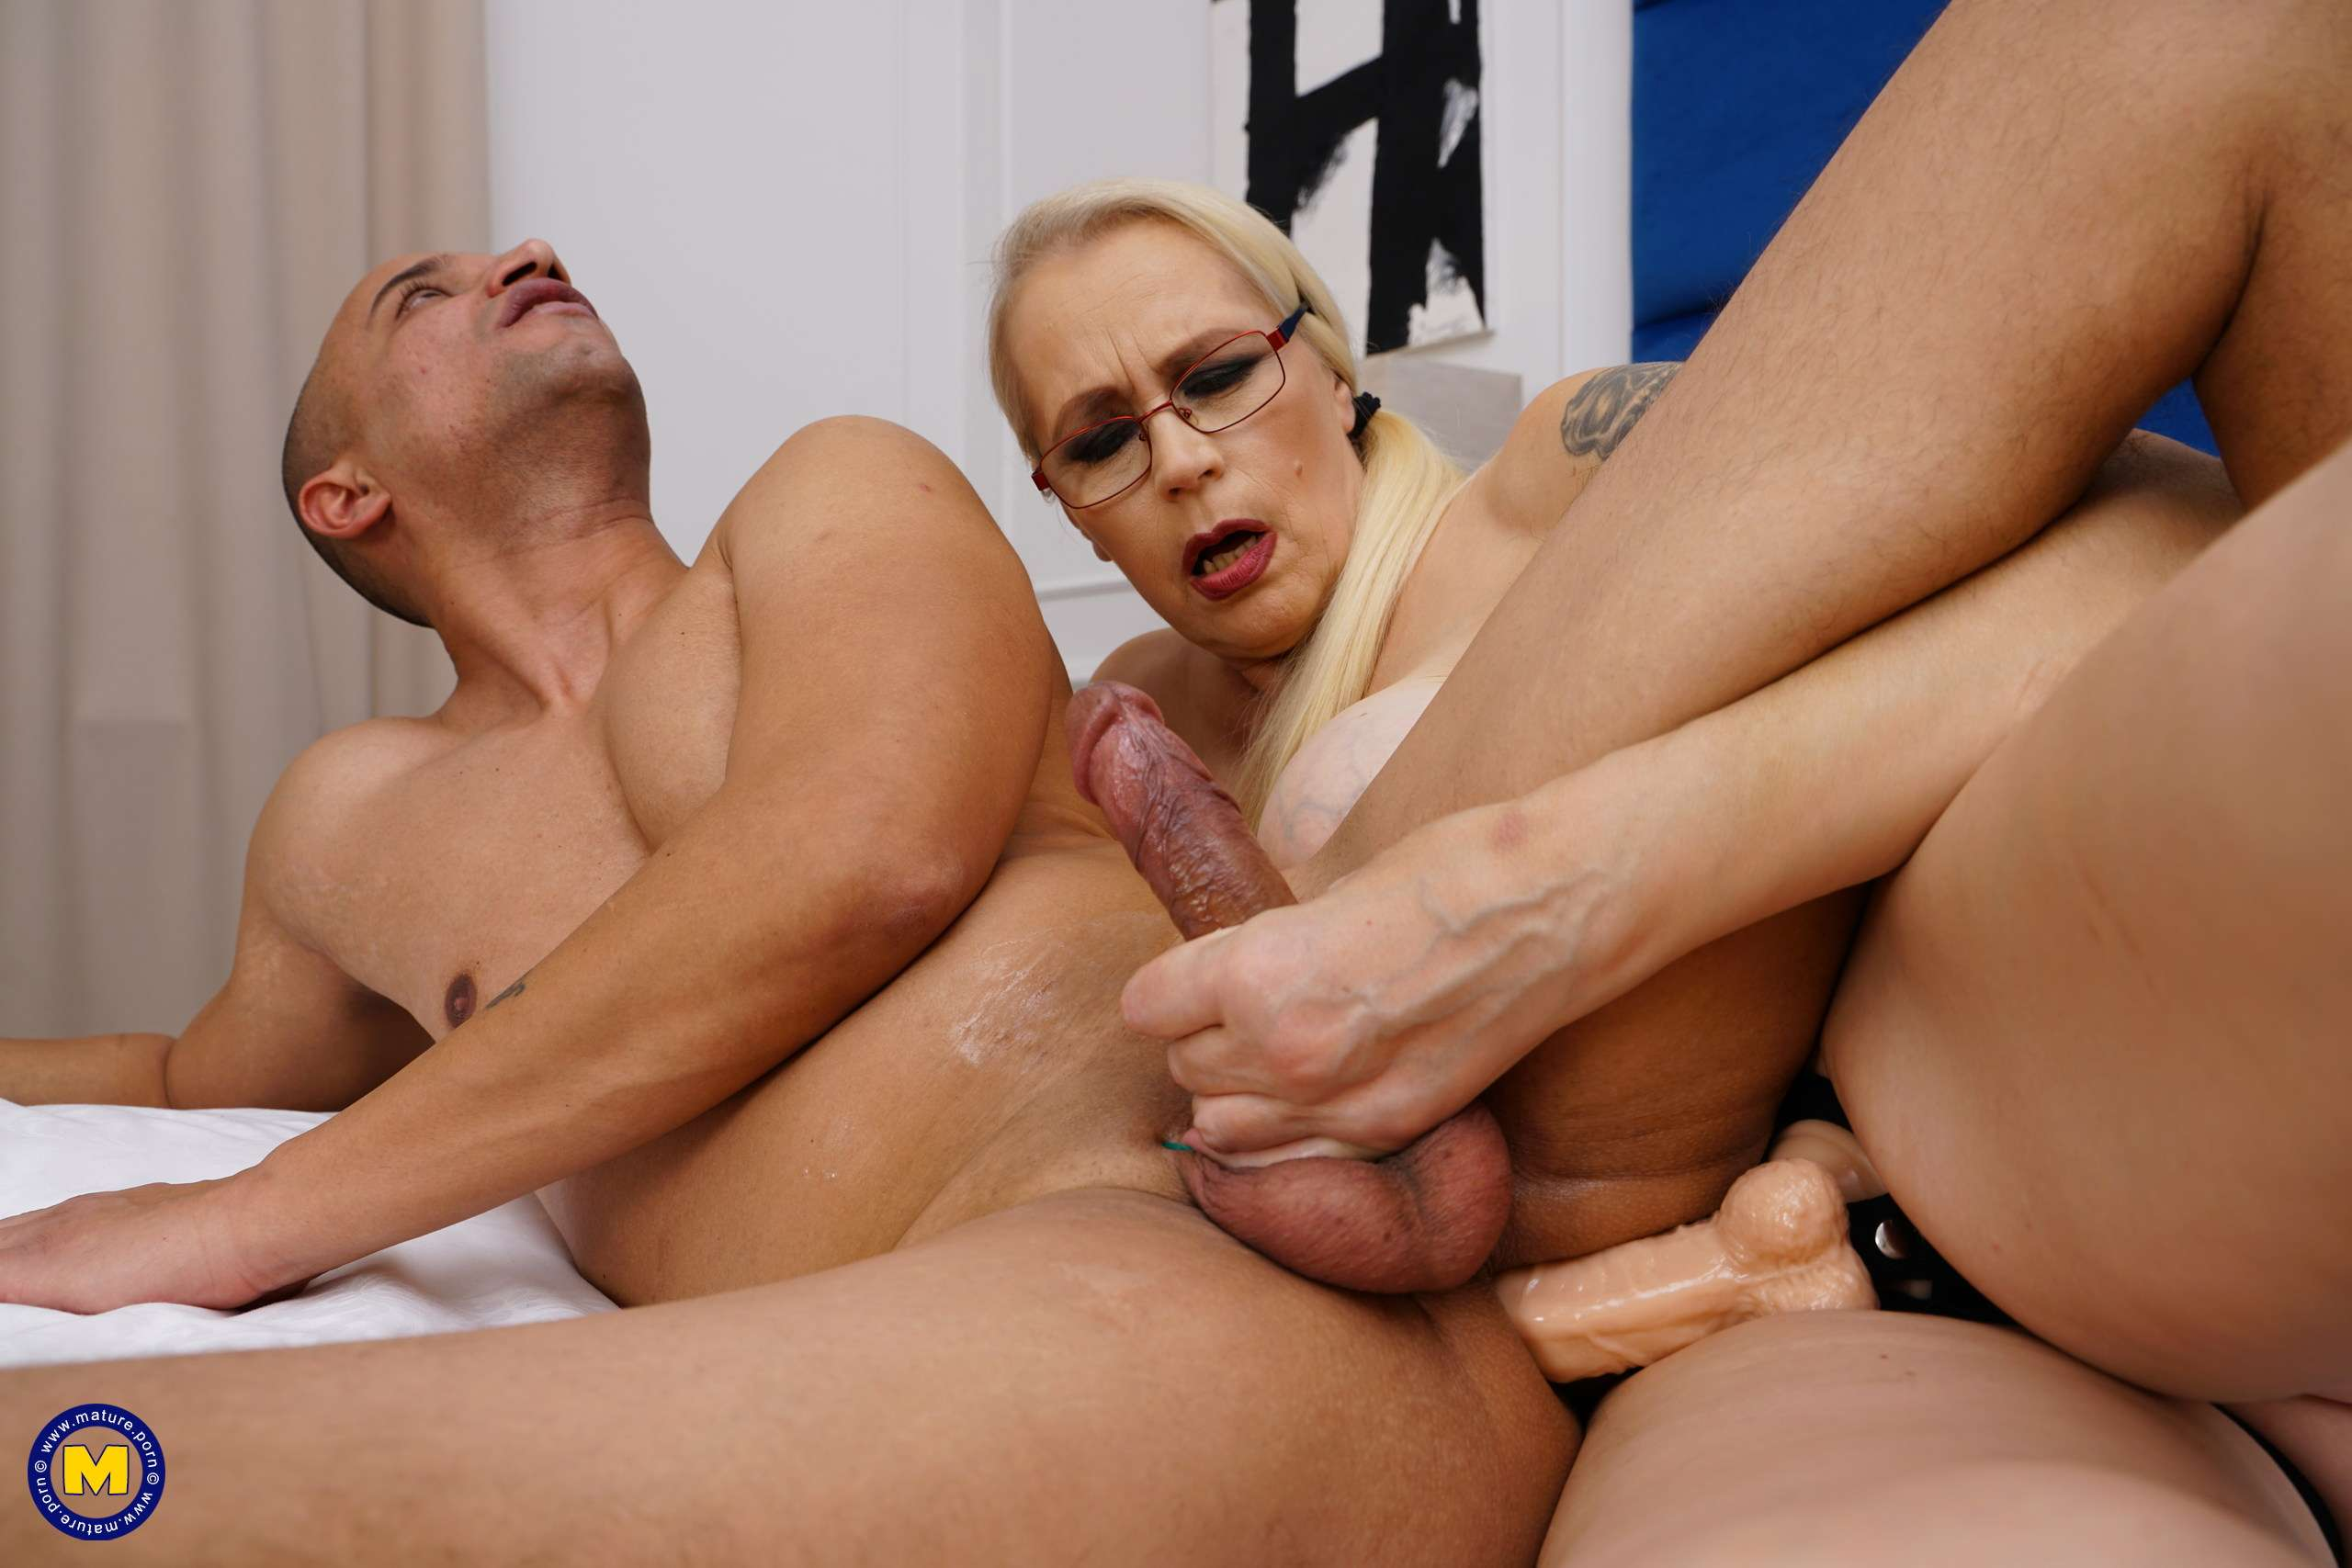 Dominant mature slut fucking a guy with a strapon dildo